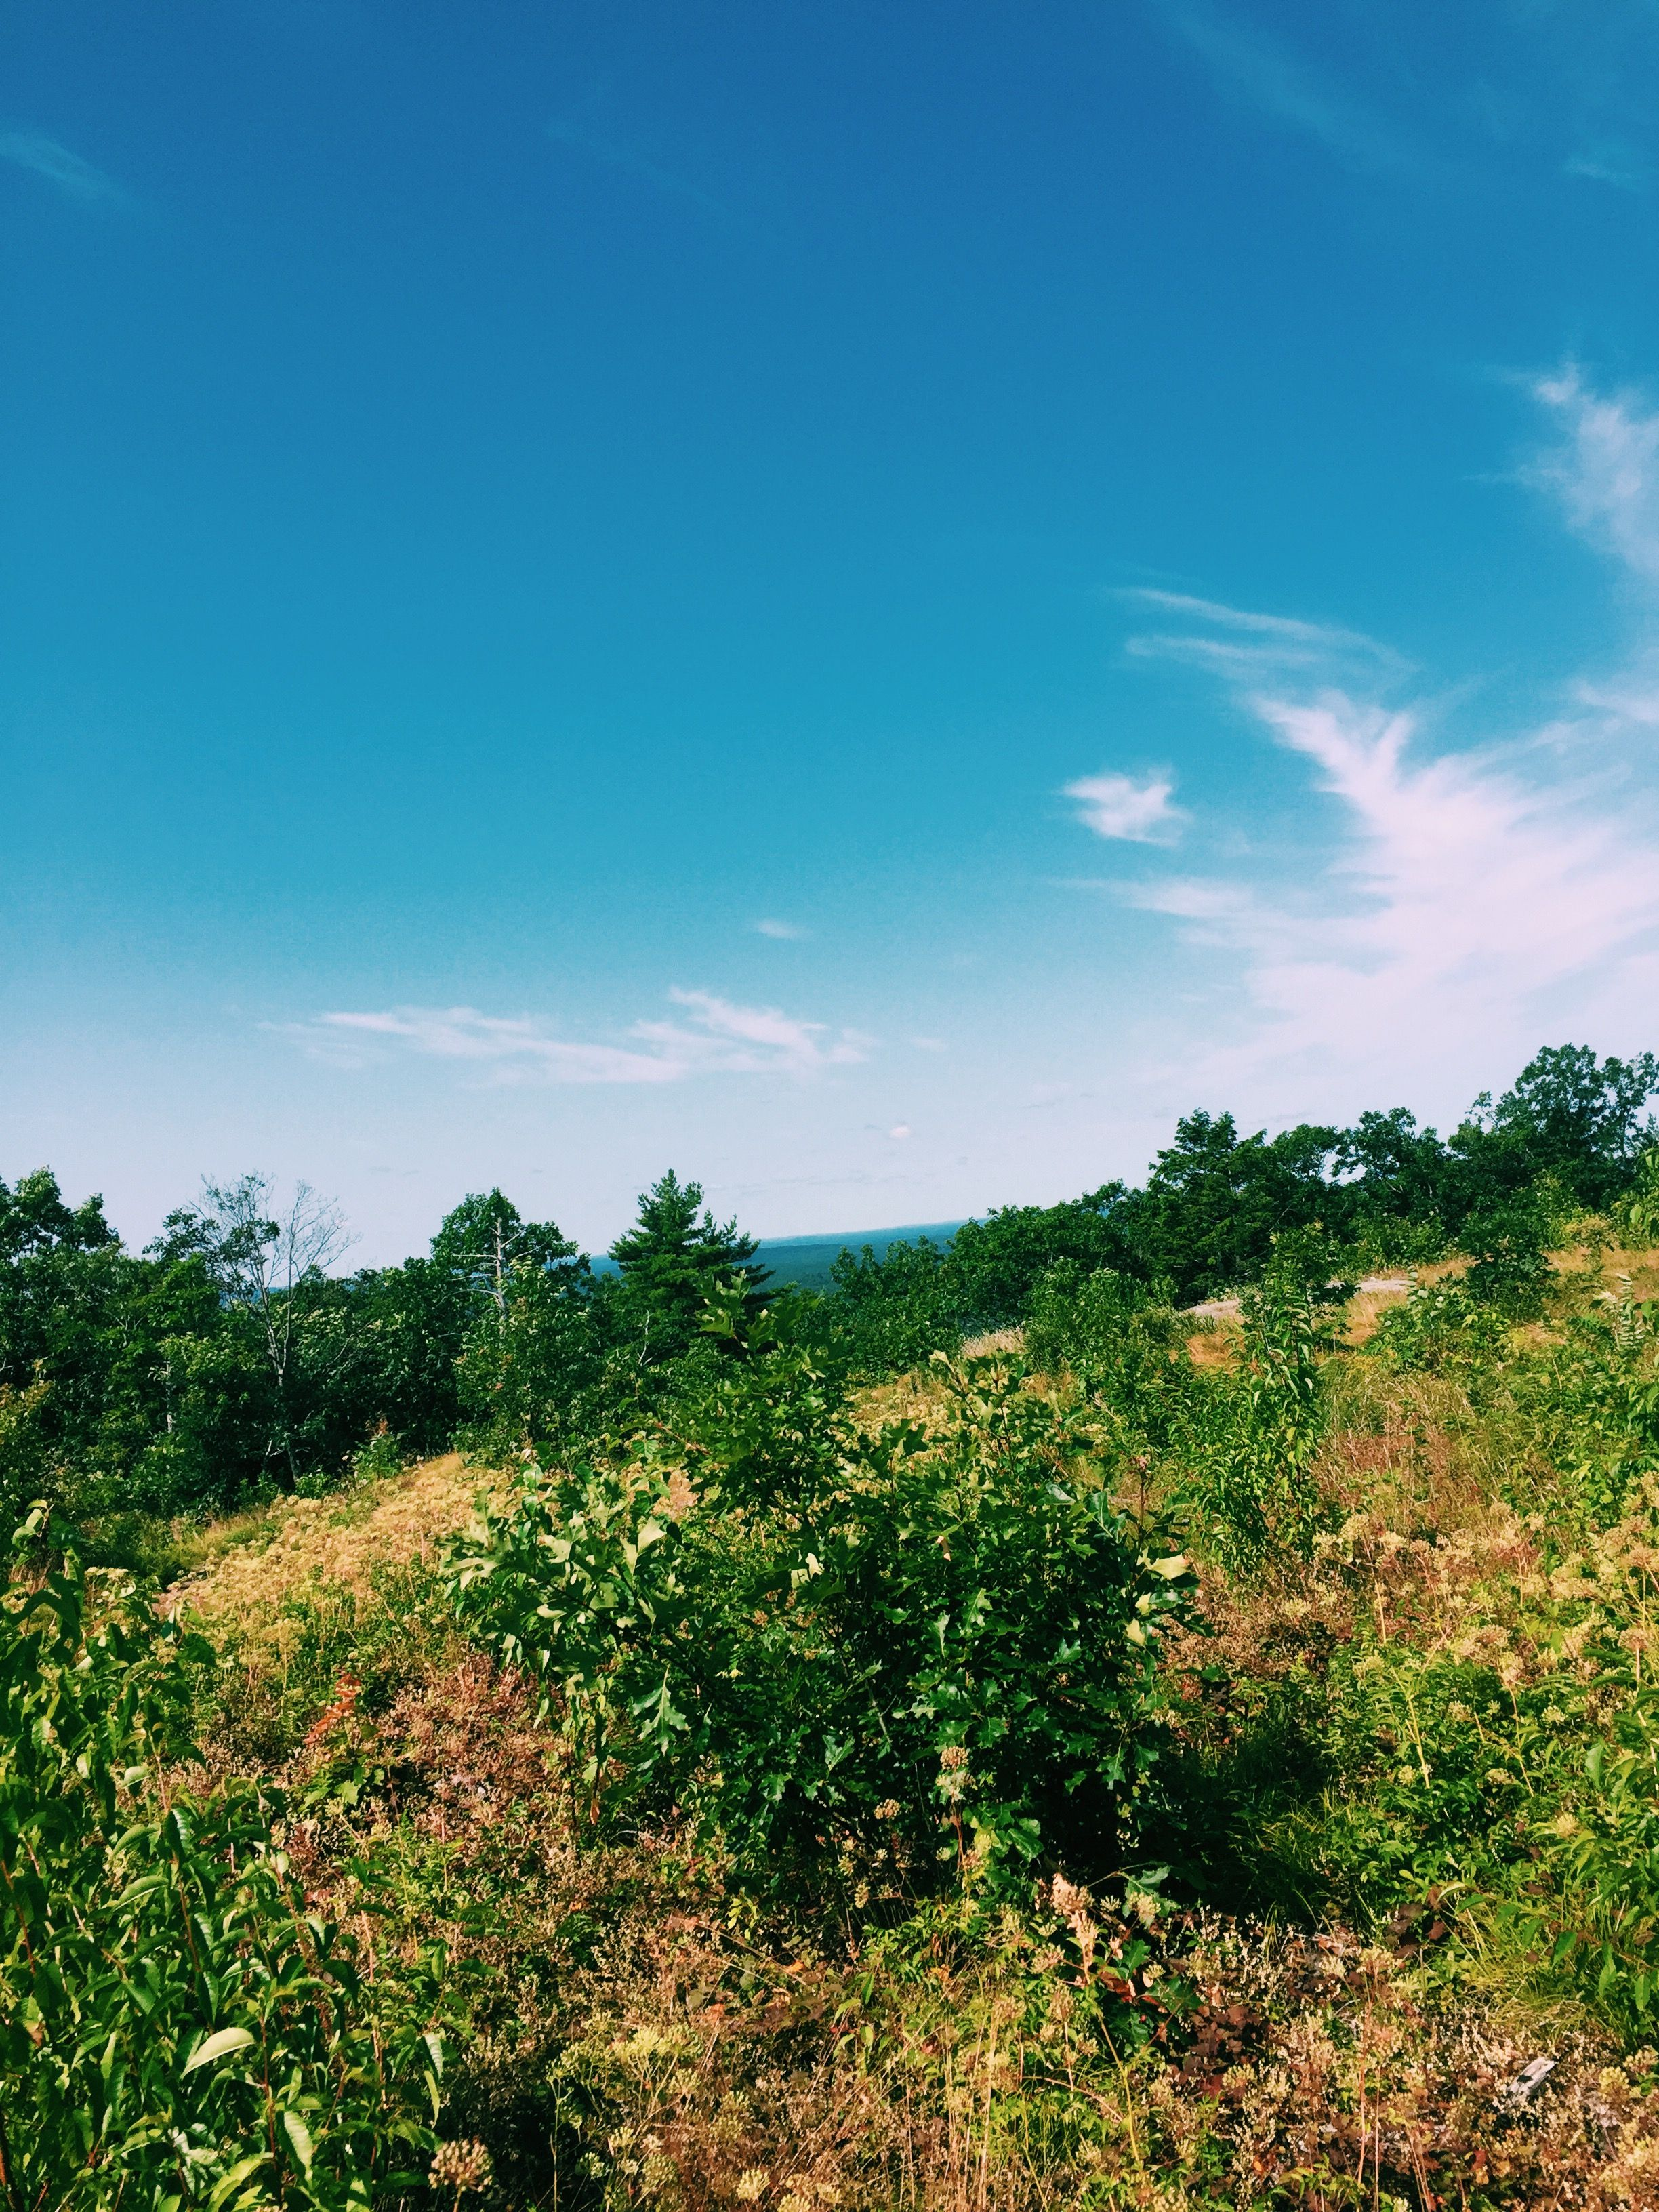 view from on top of the mountain #sky #earth #nature #hikes #clouds #green